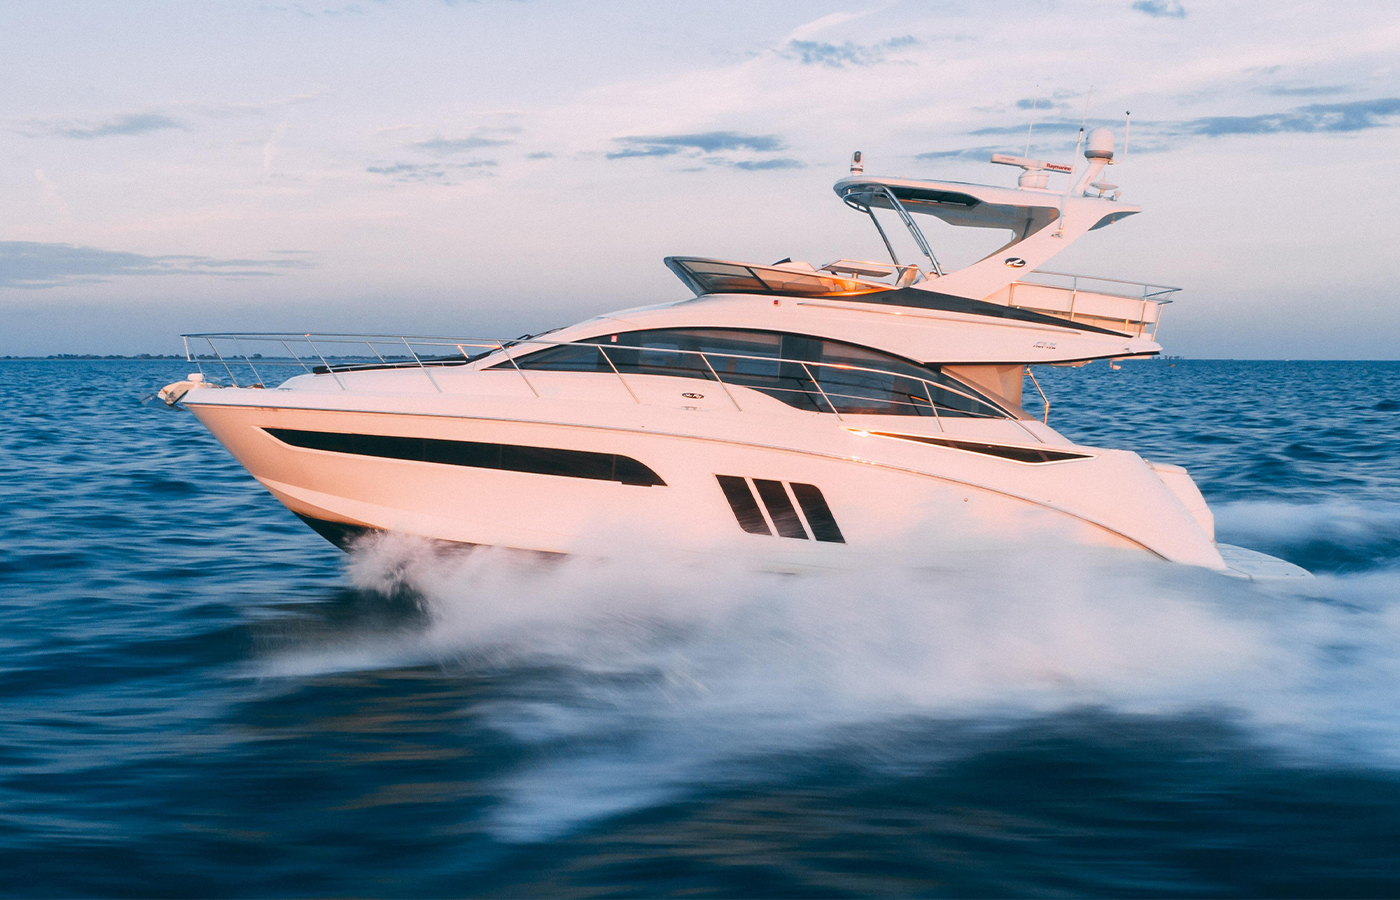 51 Sea Ray Yacht Sold By Sidney Ambroise